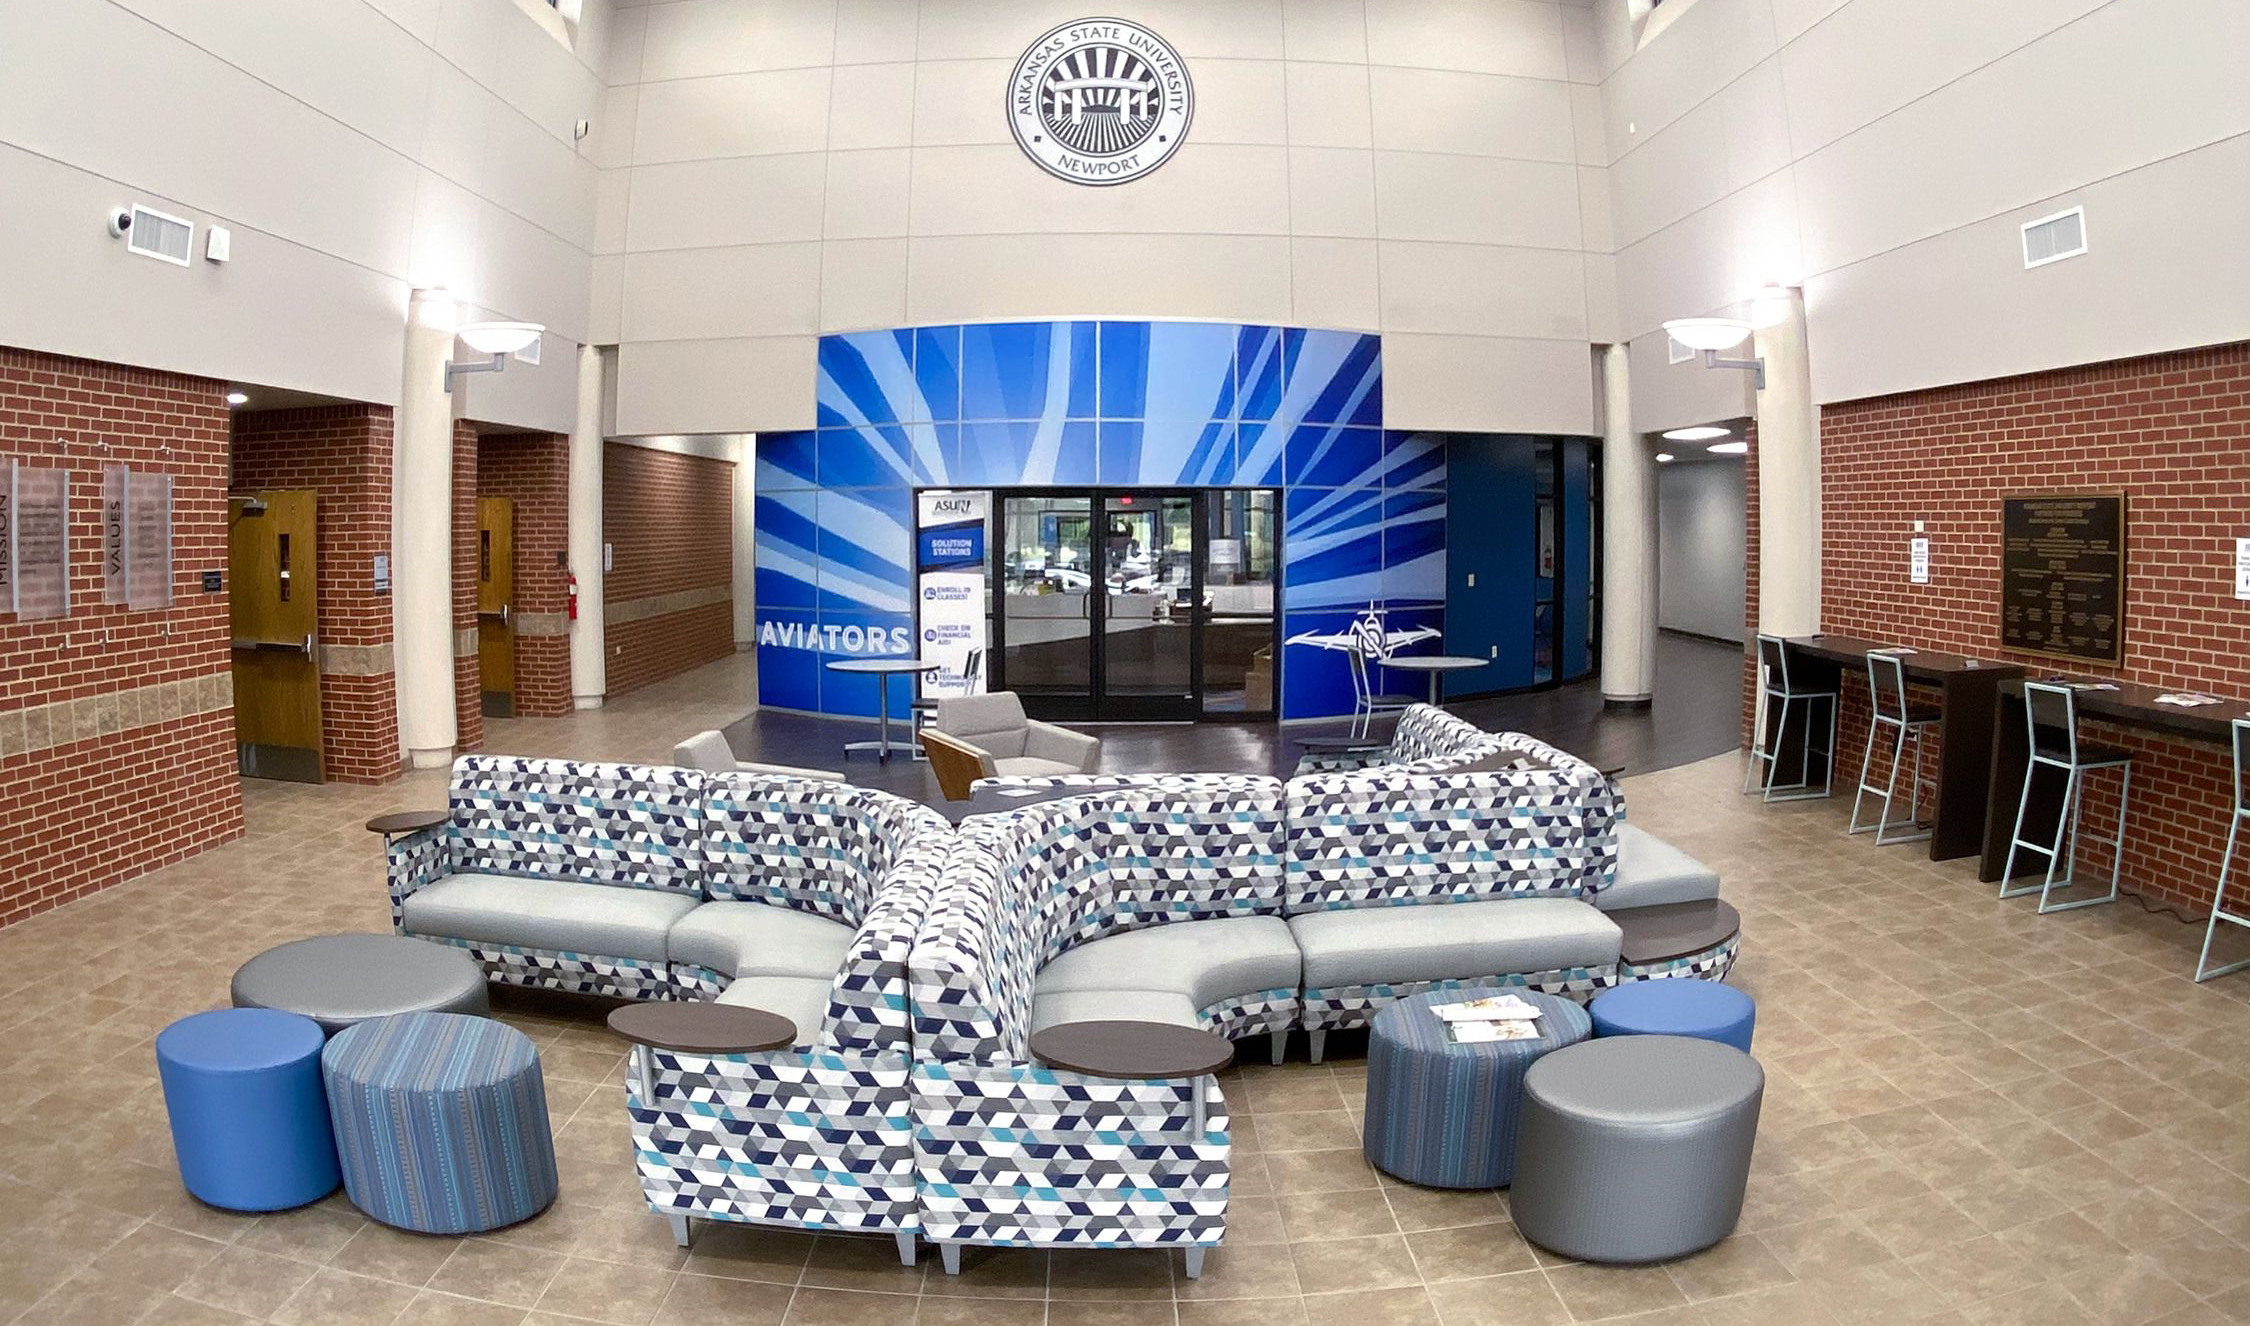 Photo of the Student Community Center Lobby